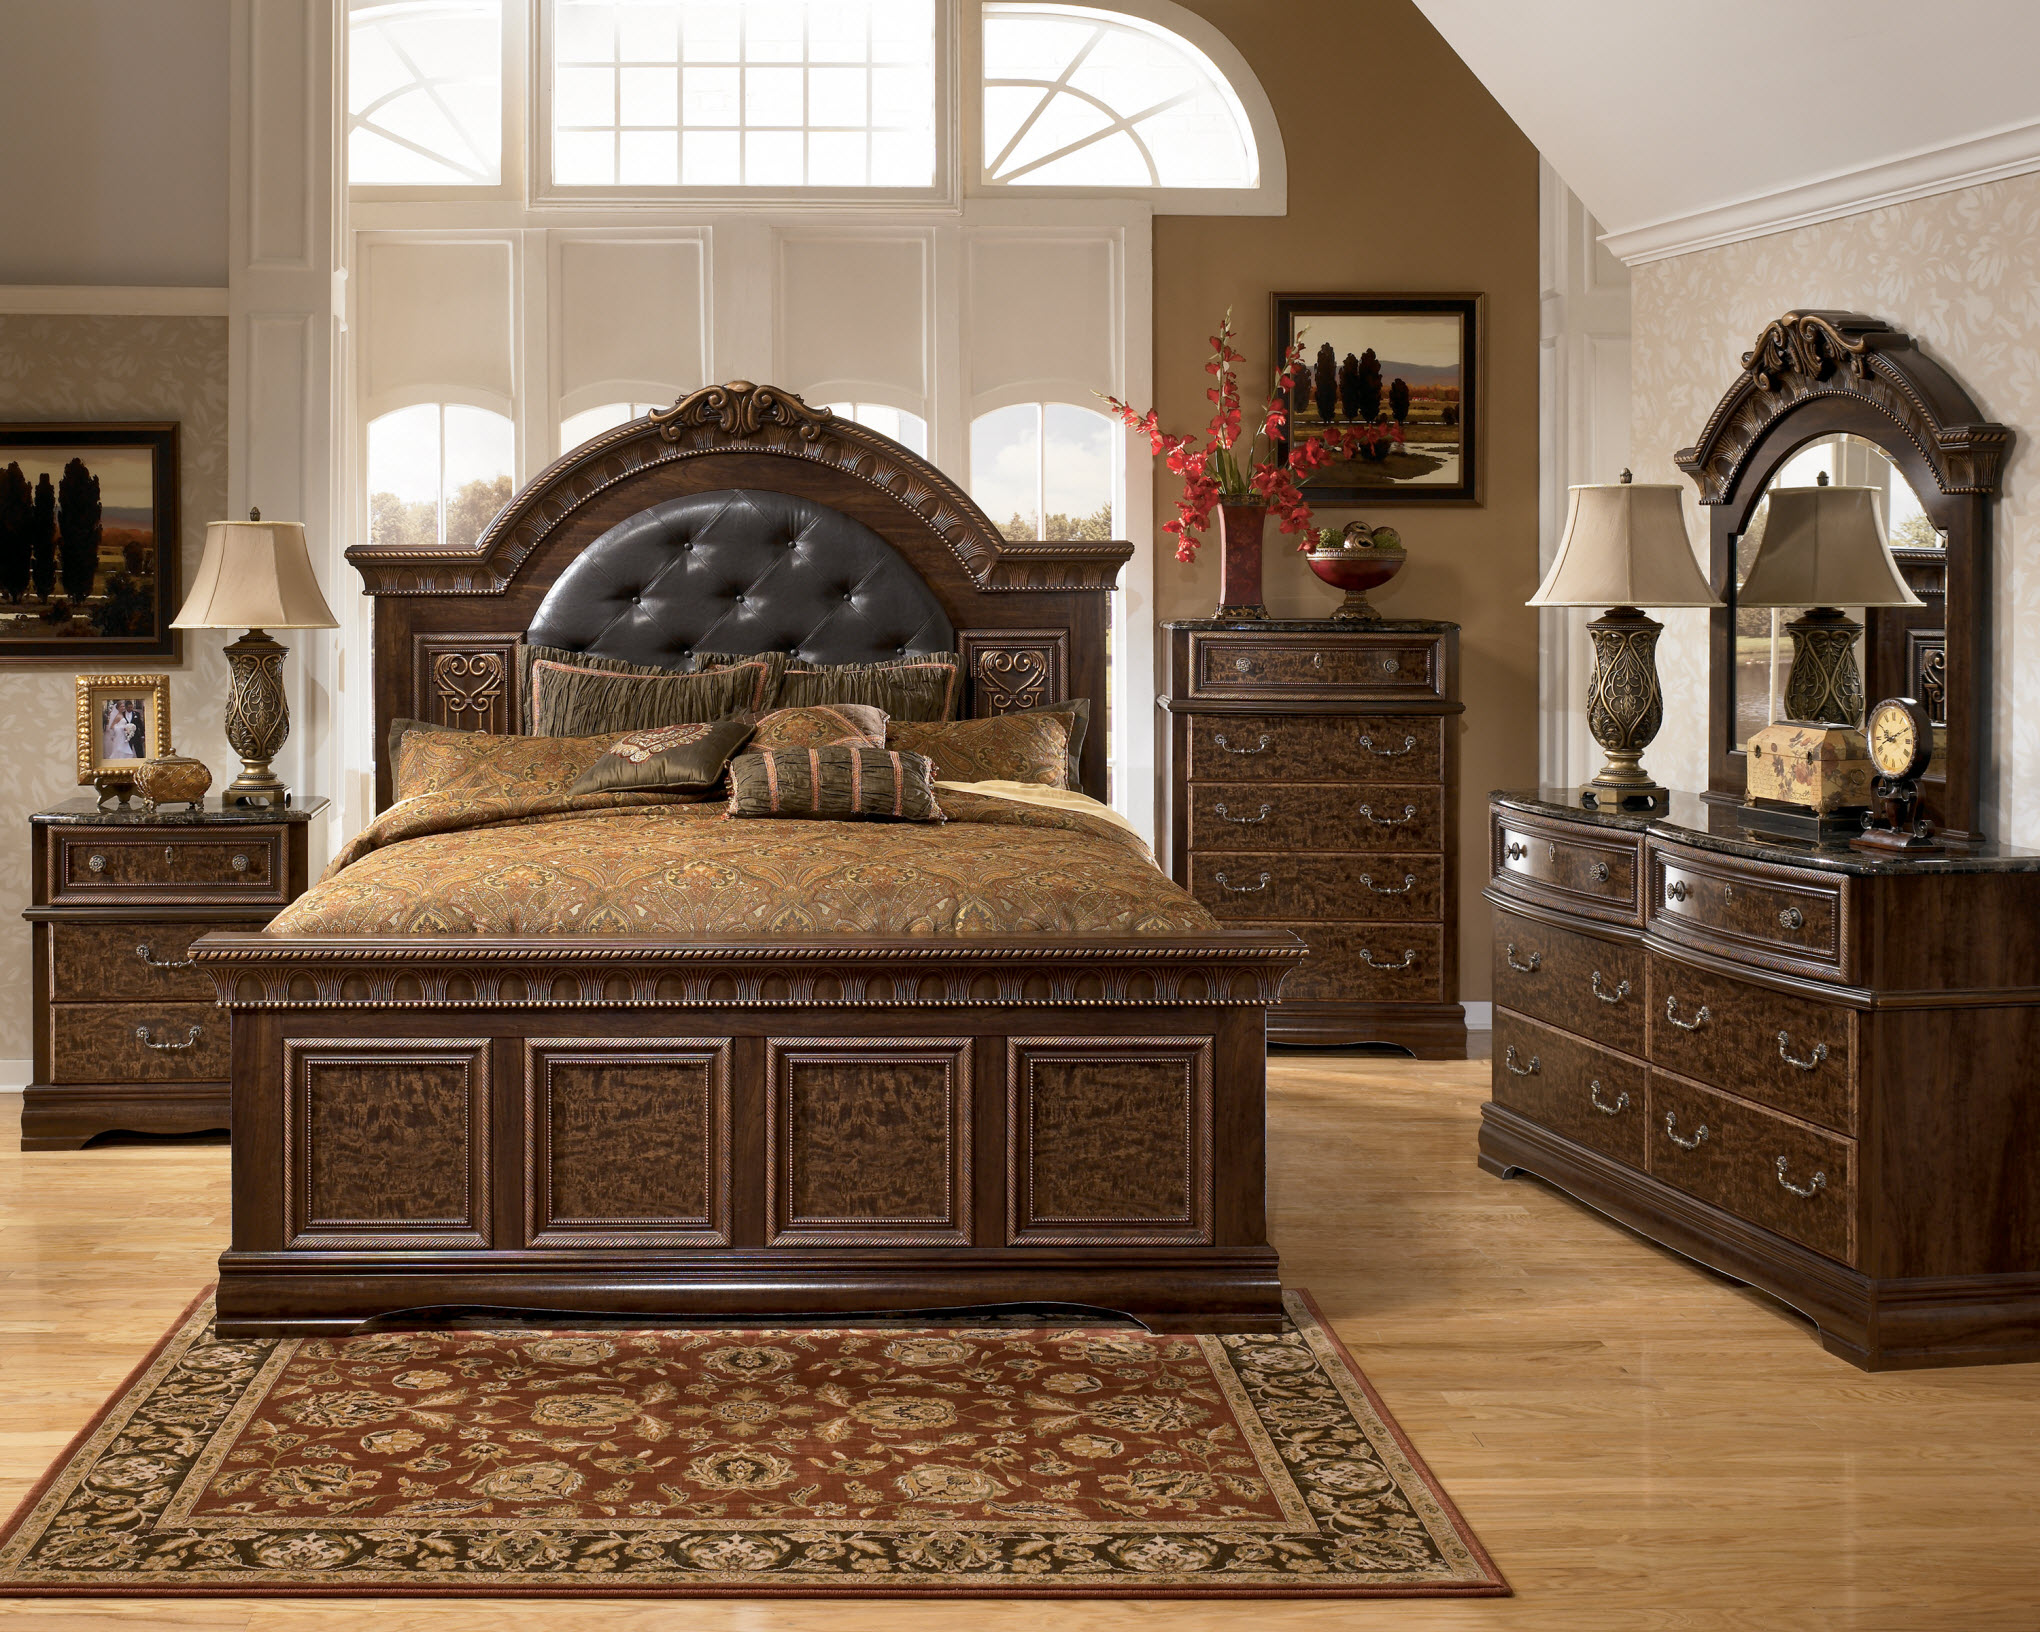 ashley furniture bedroom set quality photo - 6